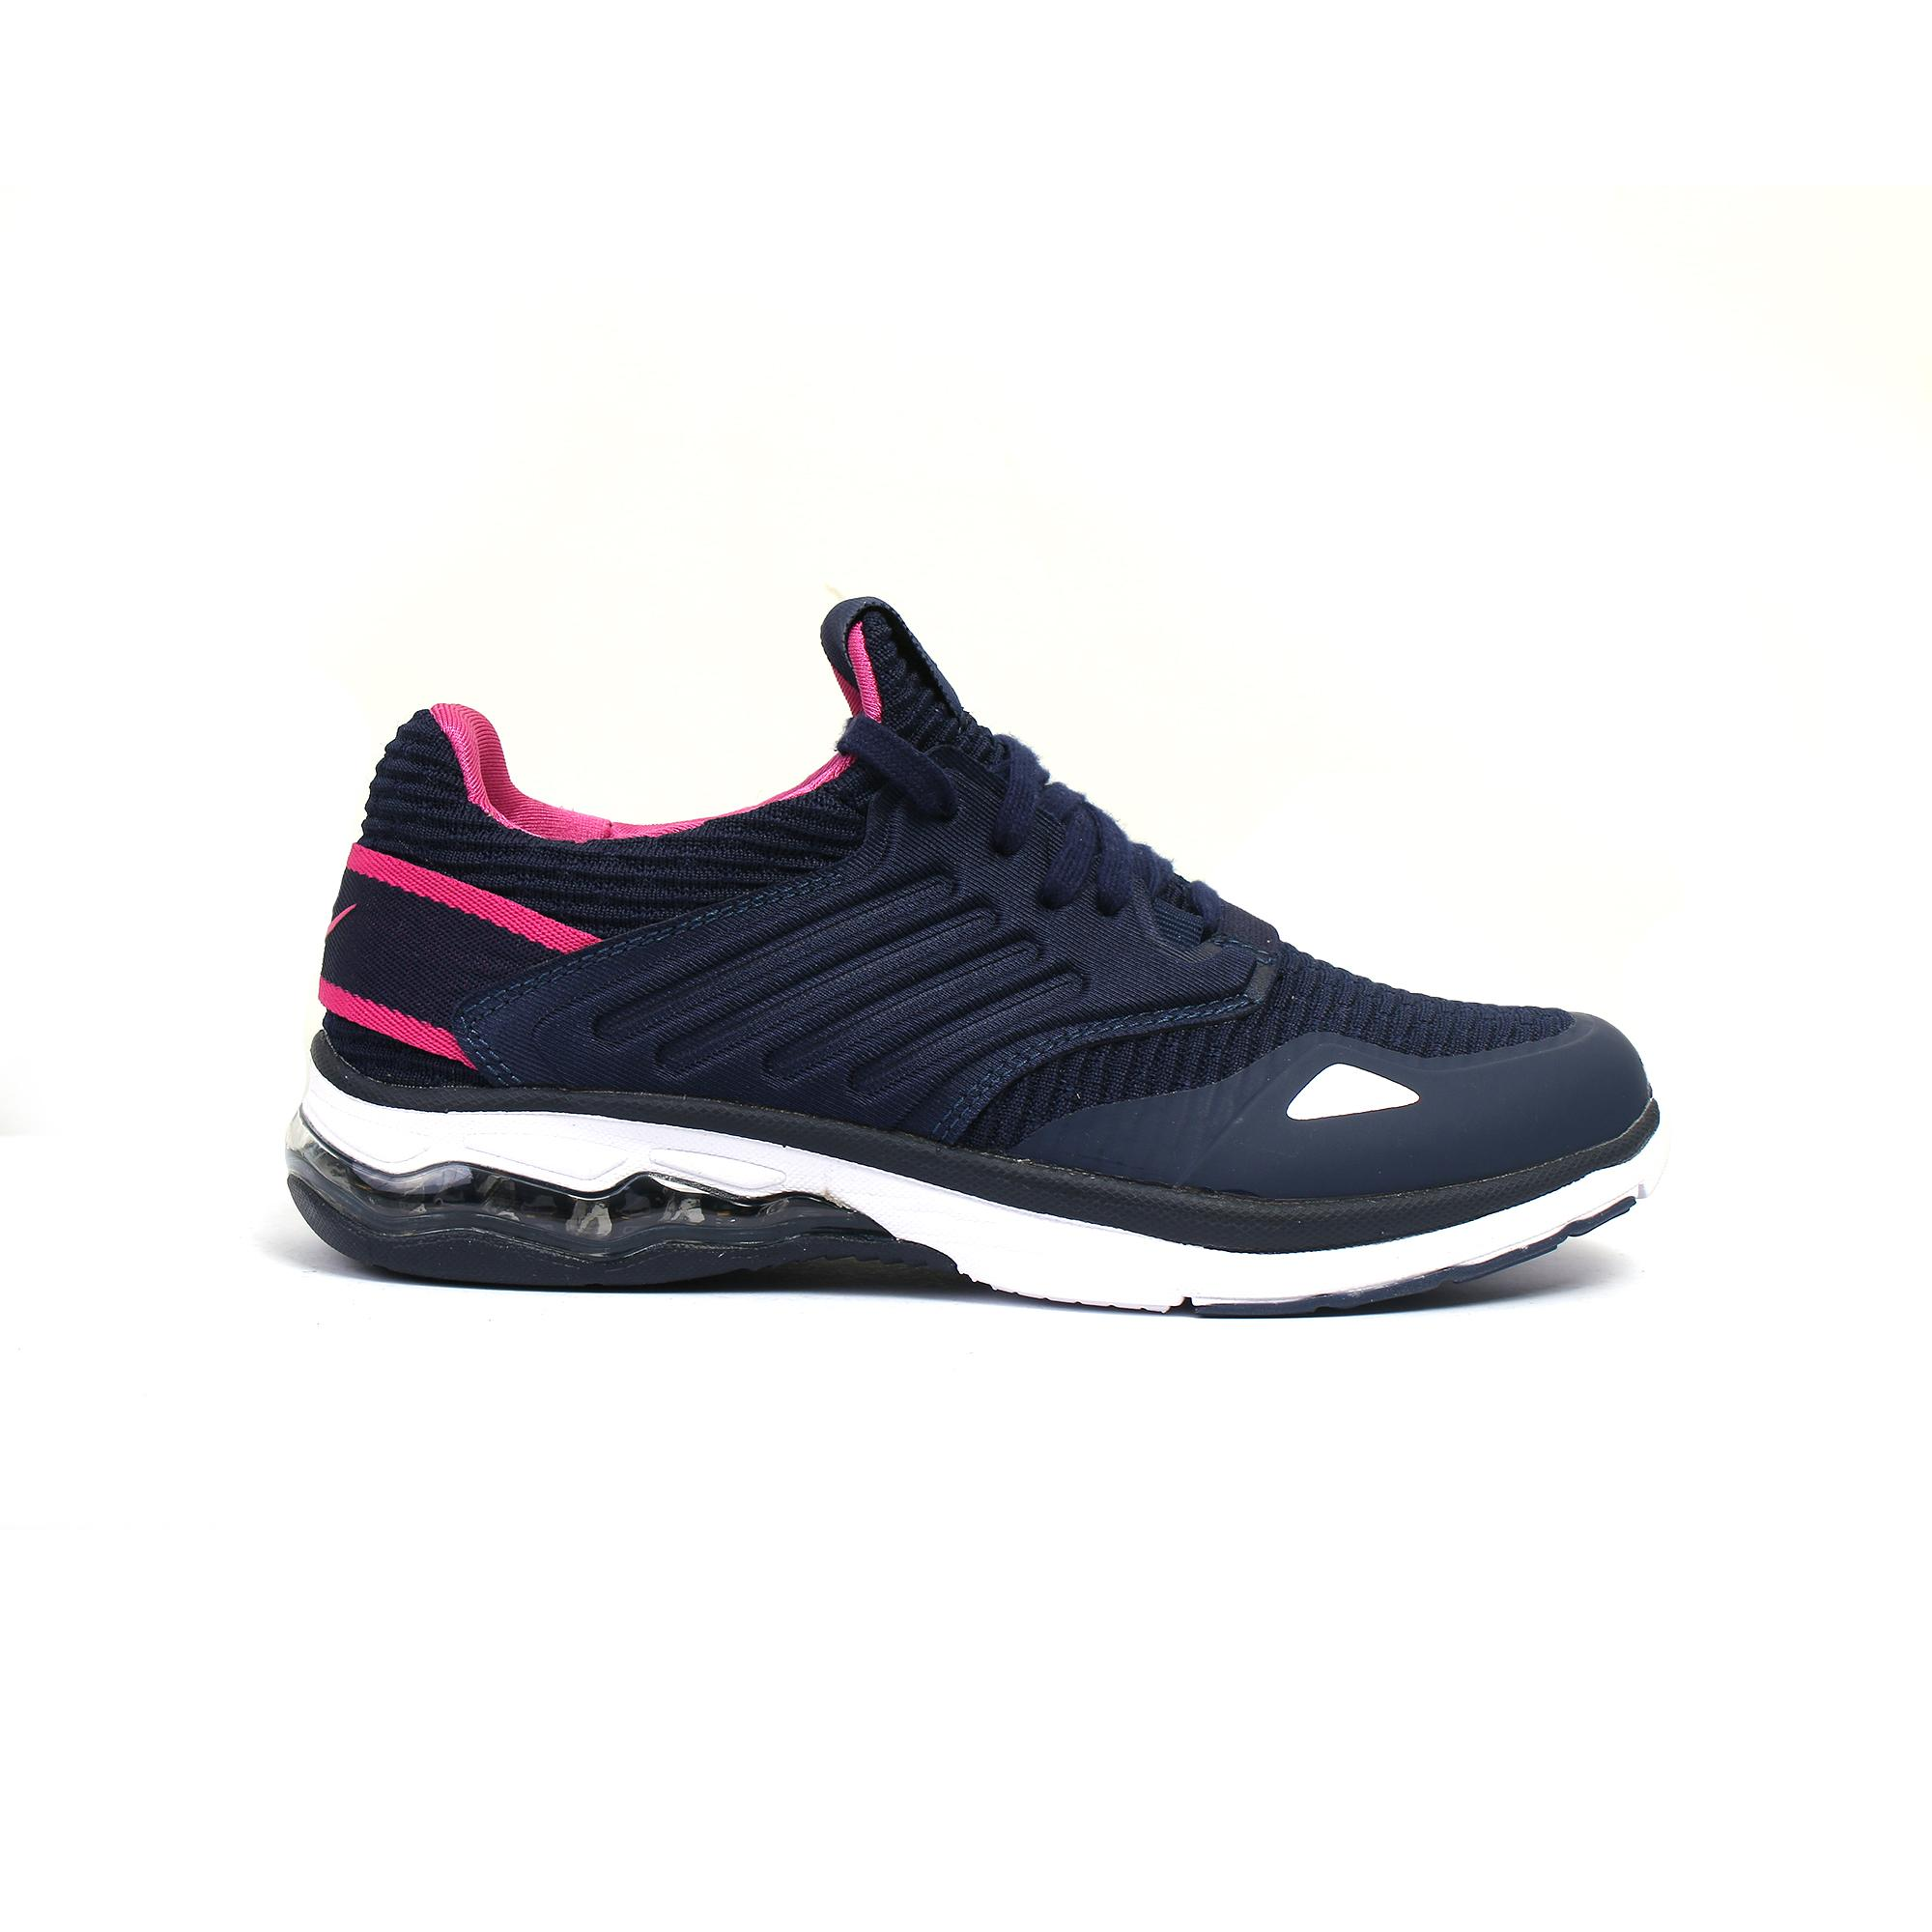 82985e1e782b67 Womens Training Shoes for sale - Cross Training Shoes for Women ...